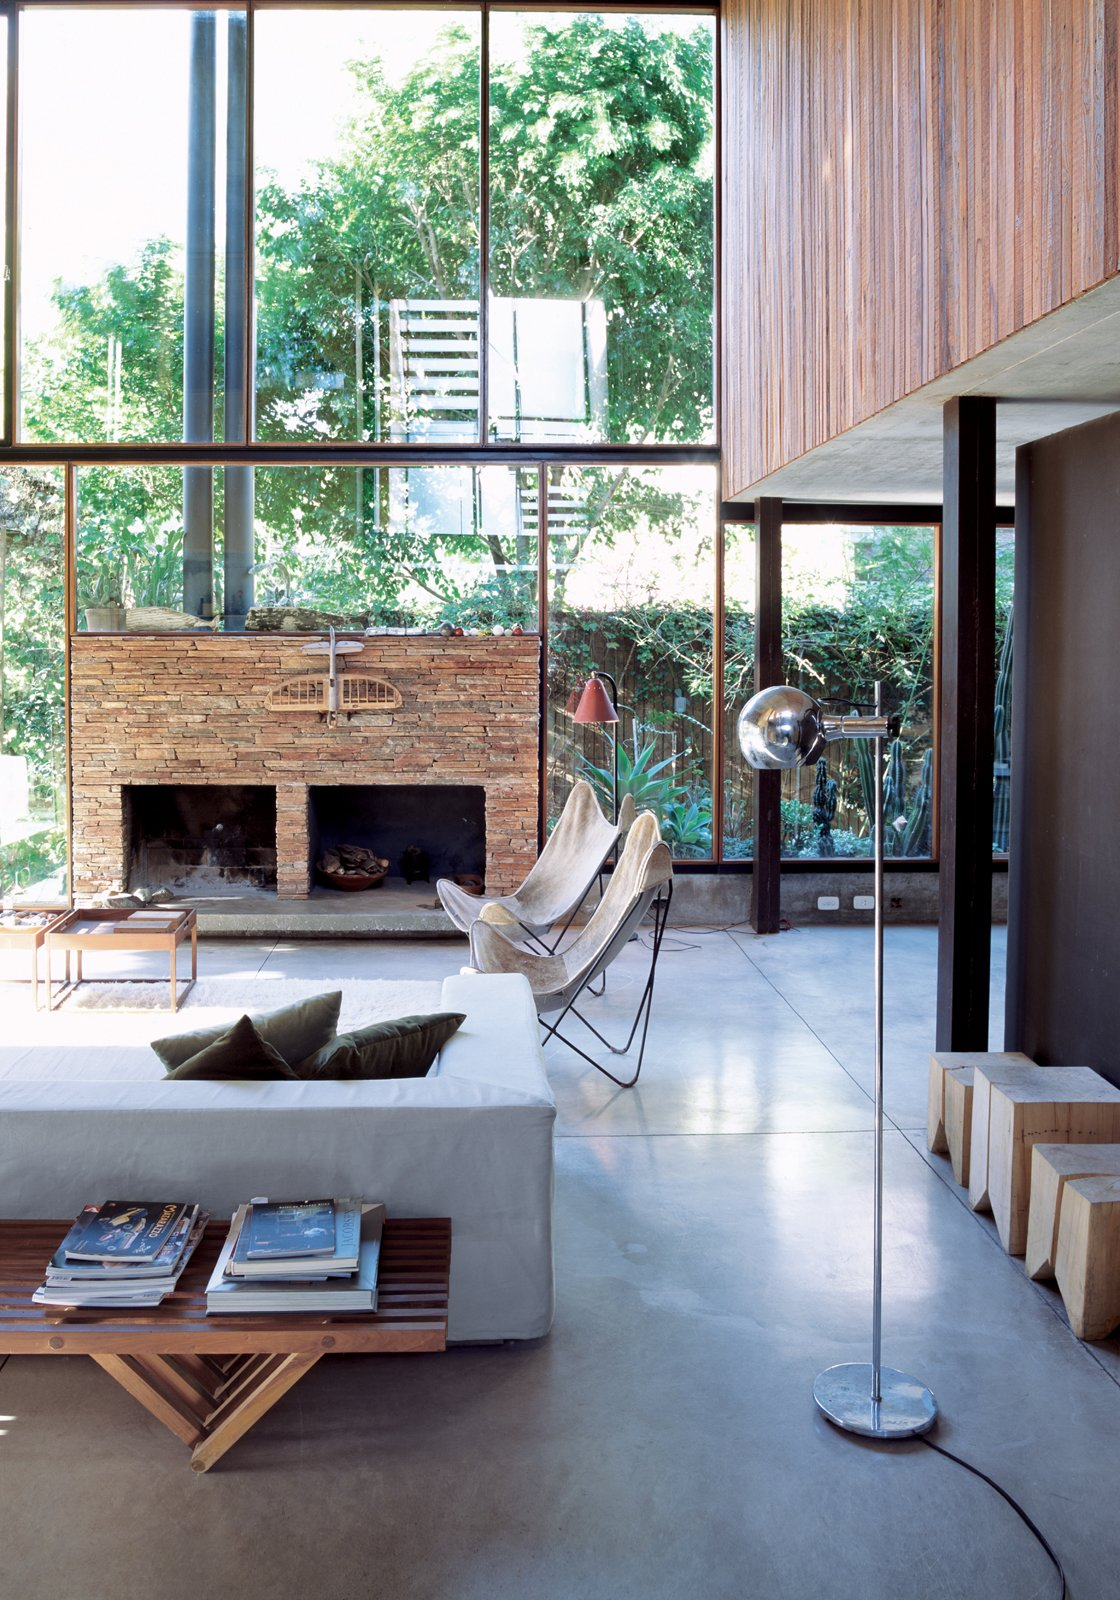 The living room resembles a Sticotti furniture showroom: The architect designed the couch, coffee tables, and stumplike stools. The fireplace is made of stacked stone from San Juan, a nearby province. 20 Modern Living Rooms - Photo 7 of 20